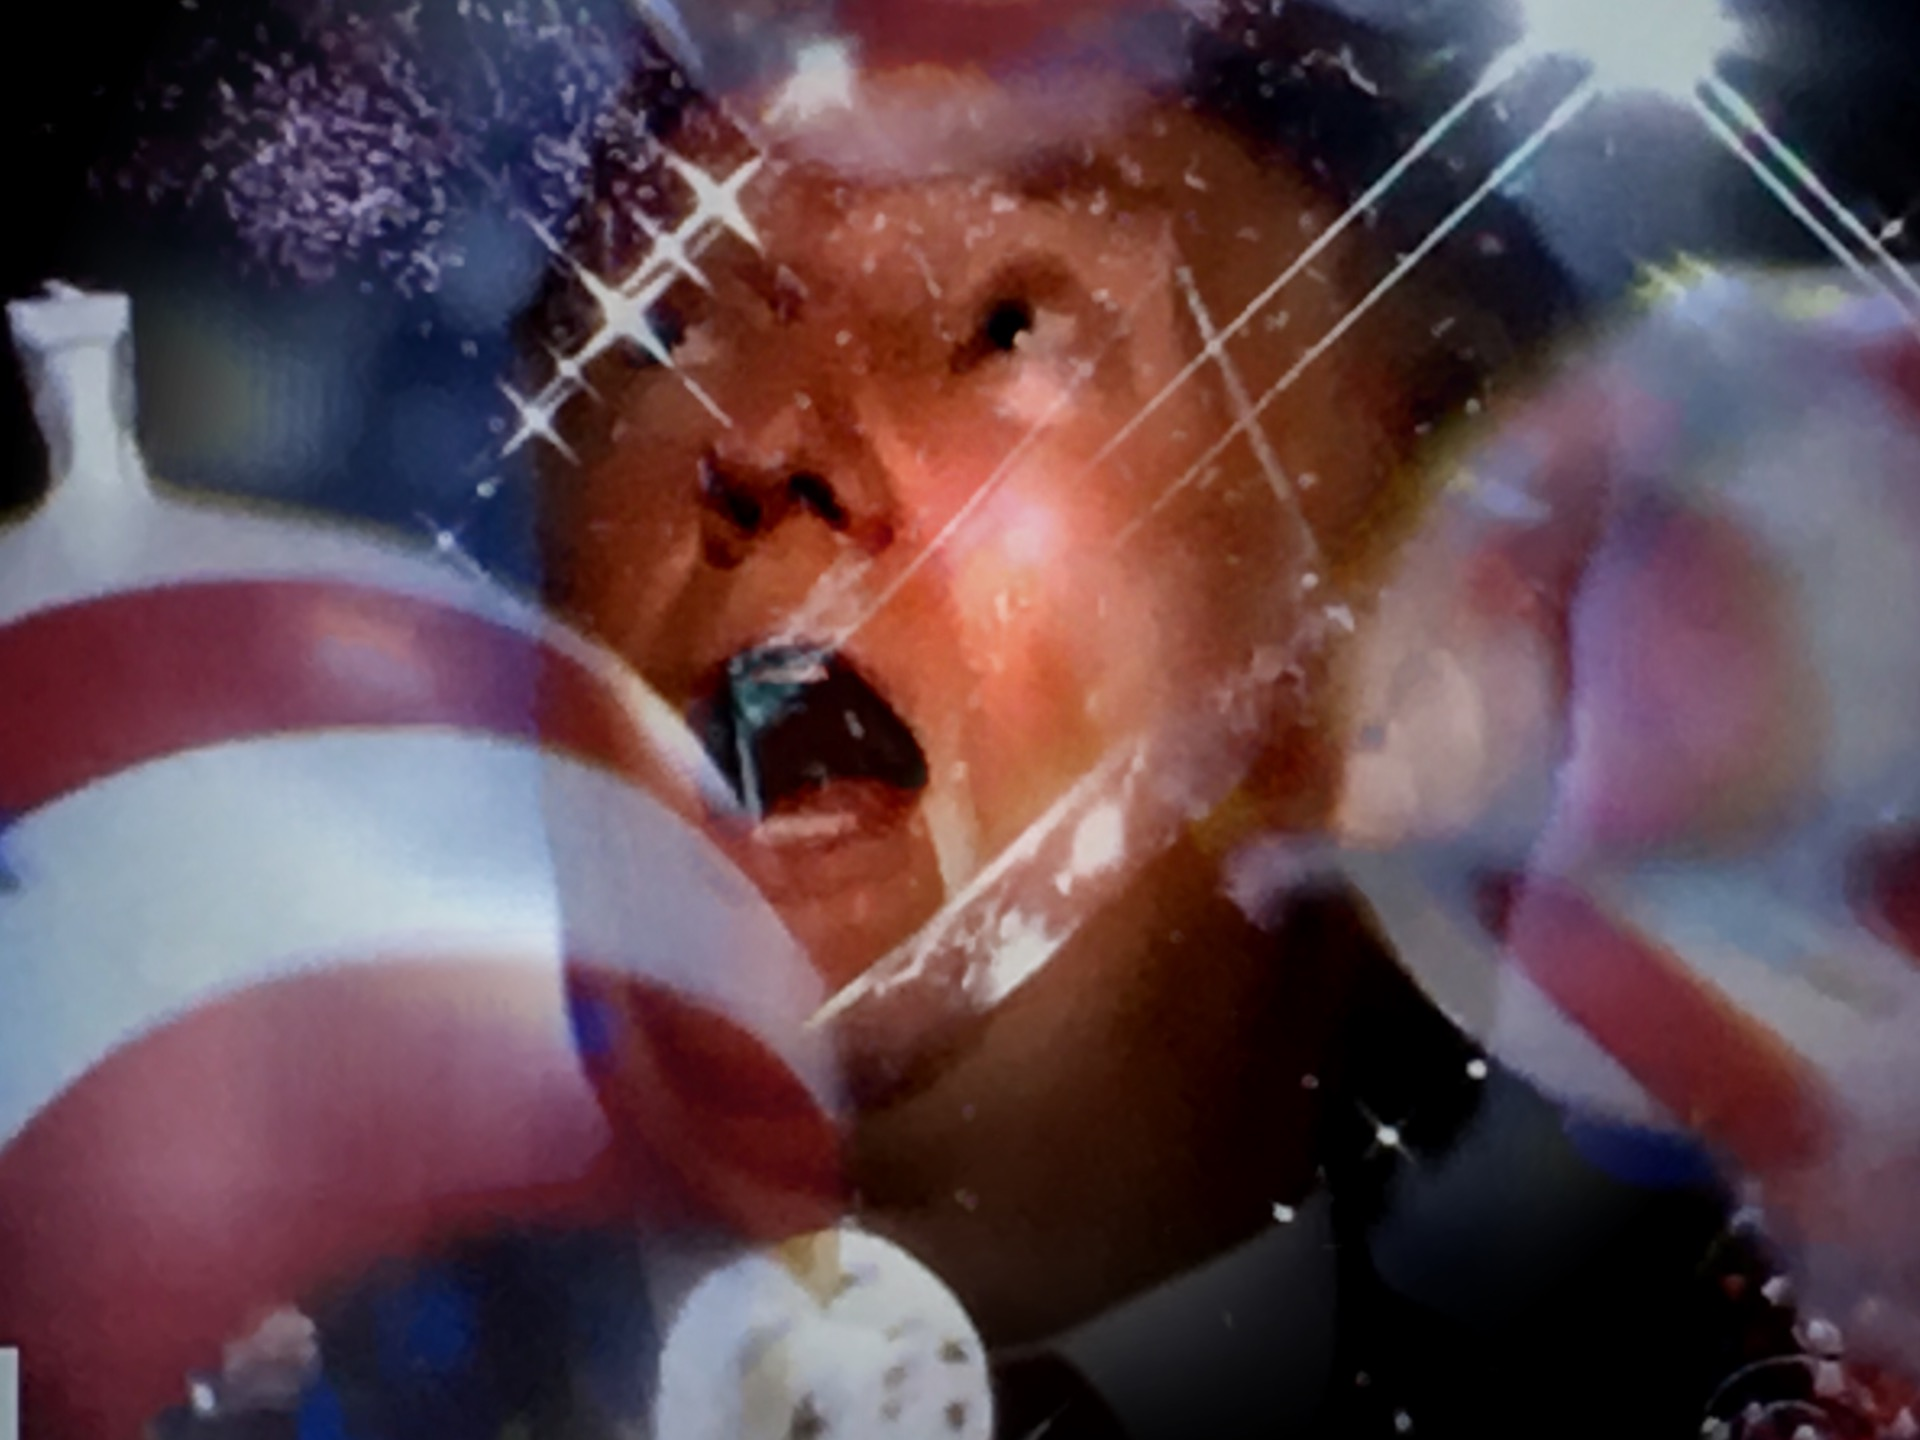 Donald Trump at the conclusion of the RNC. (Composite image by Biz Herman/GroundTruth)